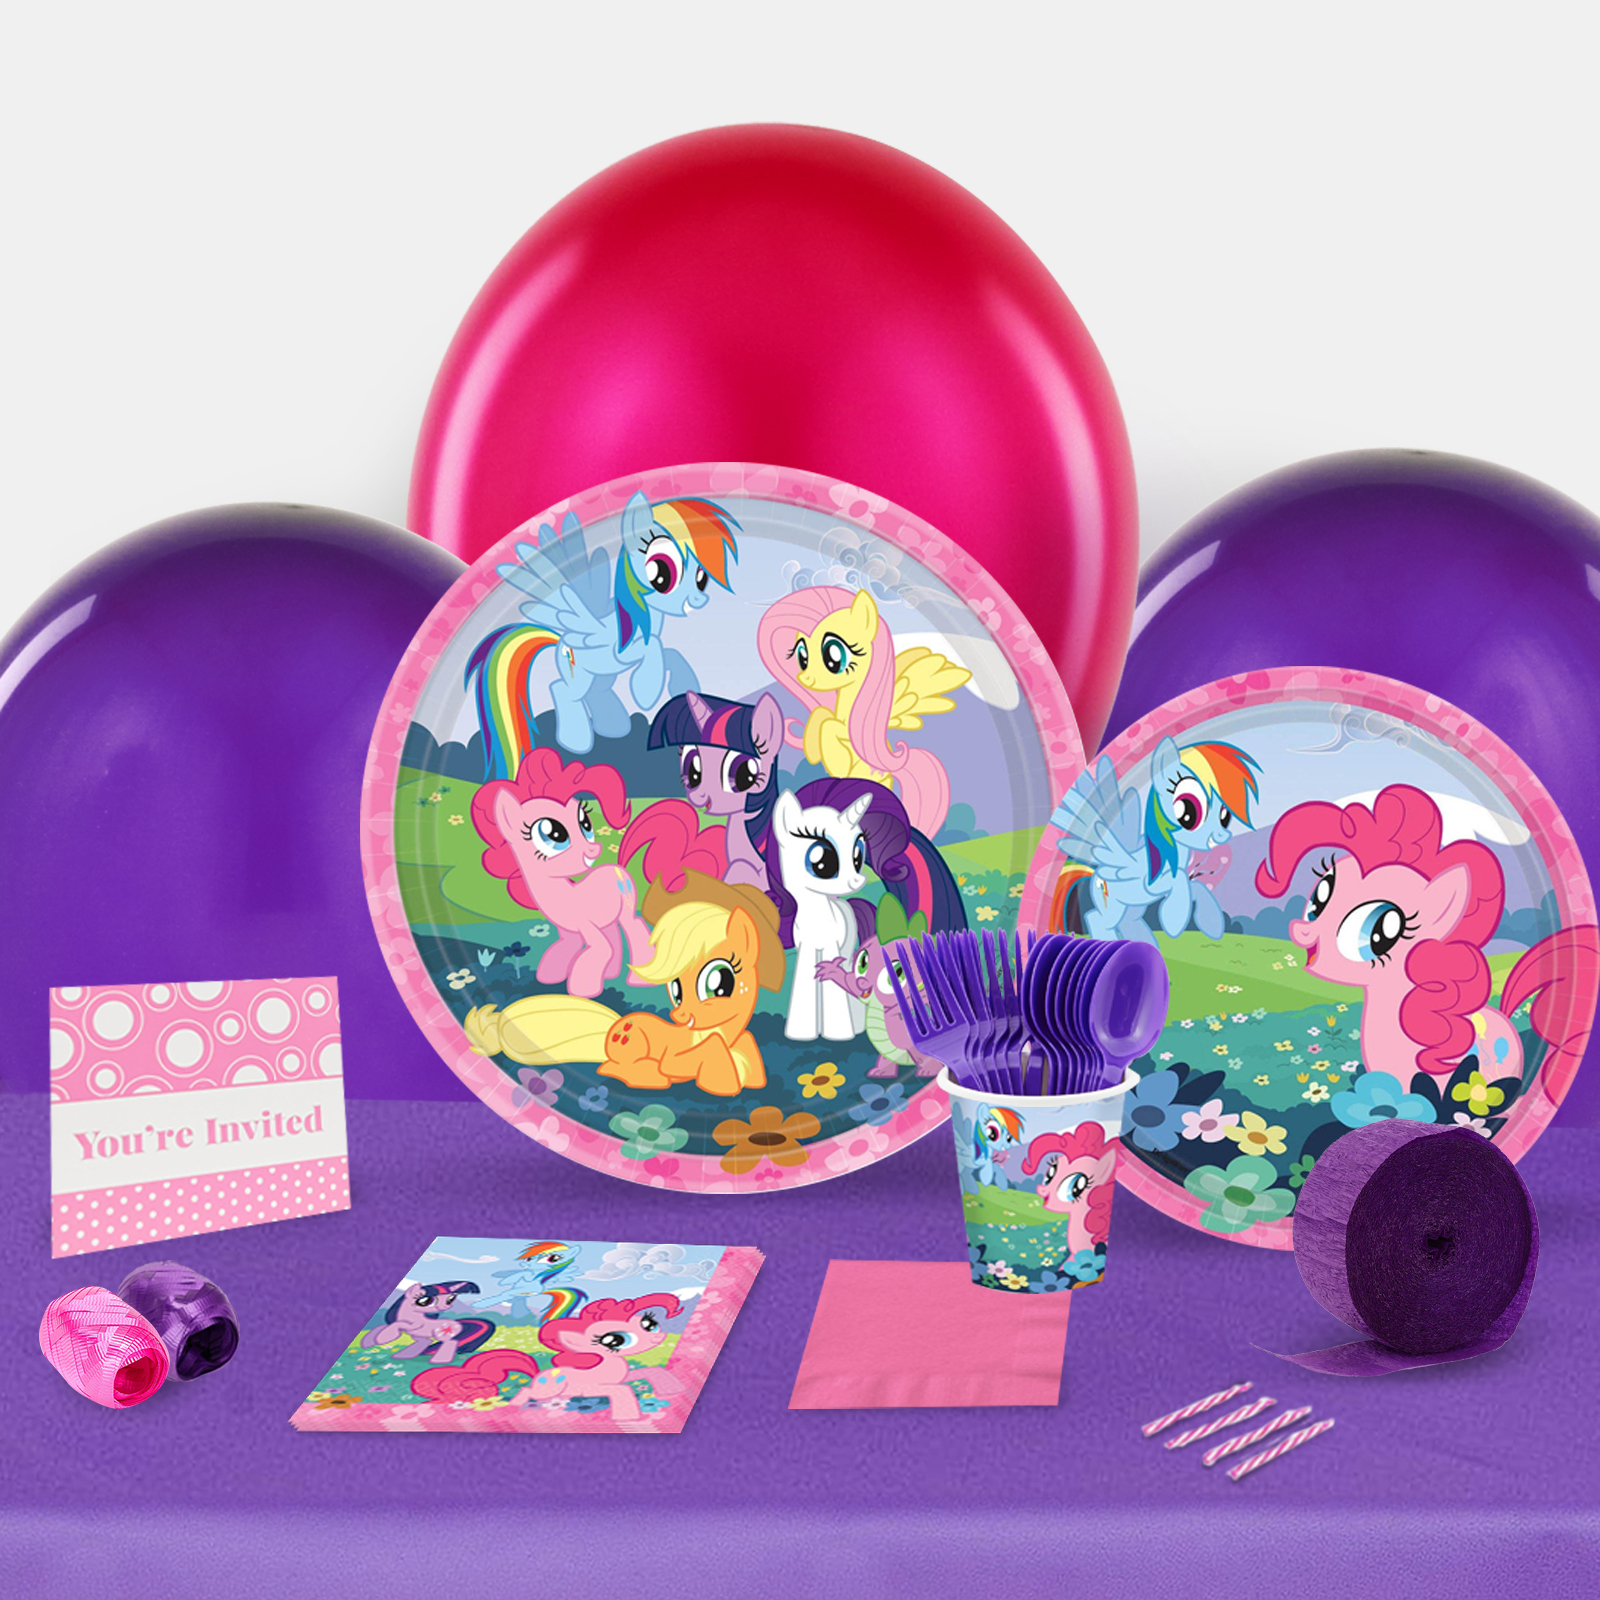 My Little Pony Friendship Magic Party in a Box For 8-Basic